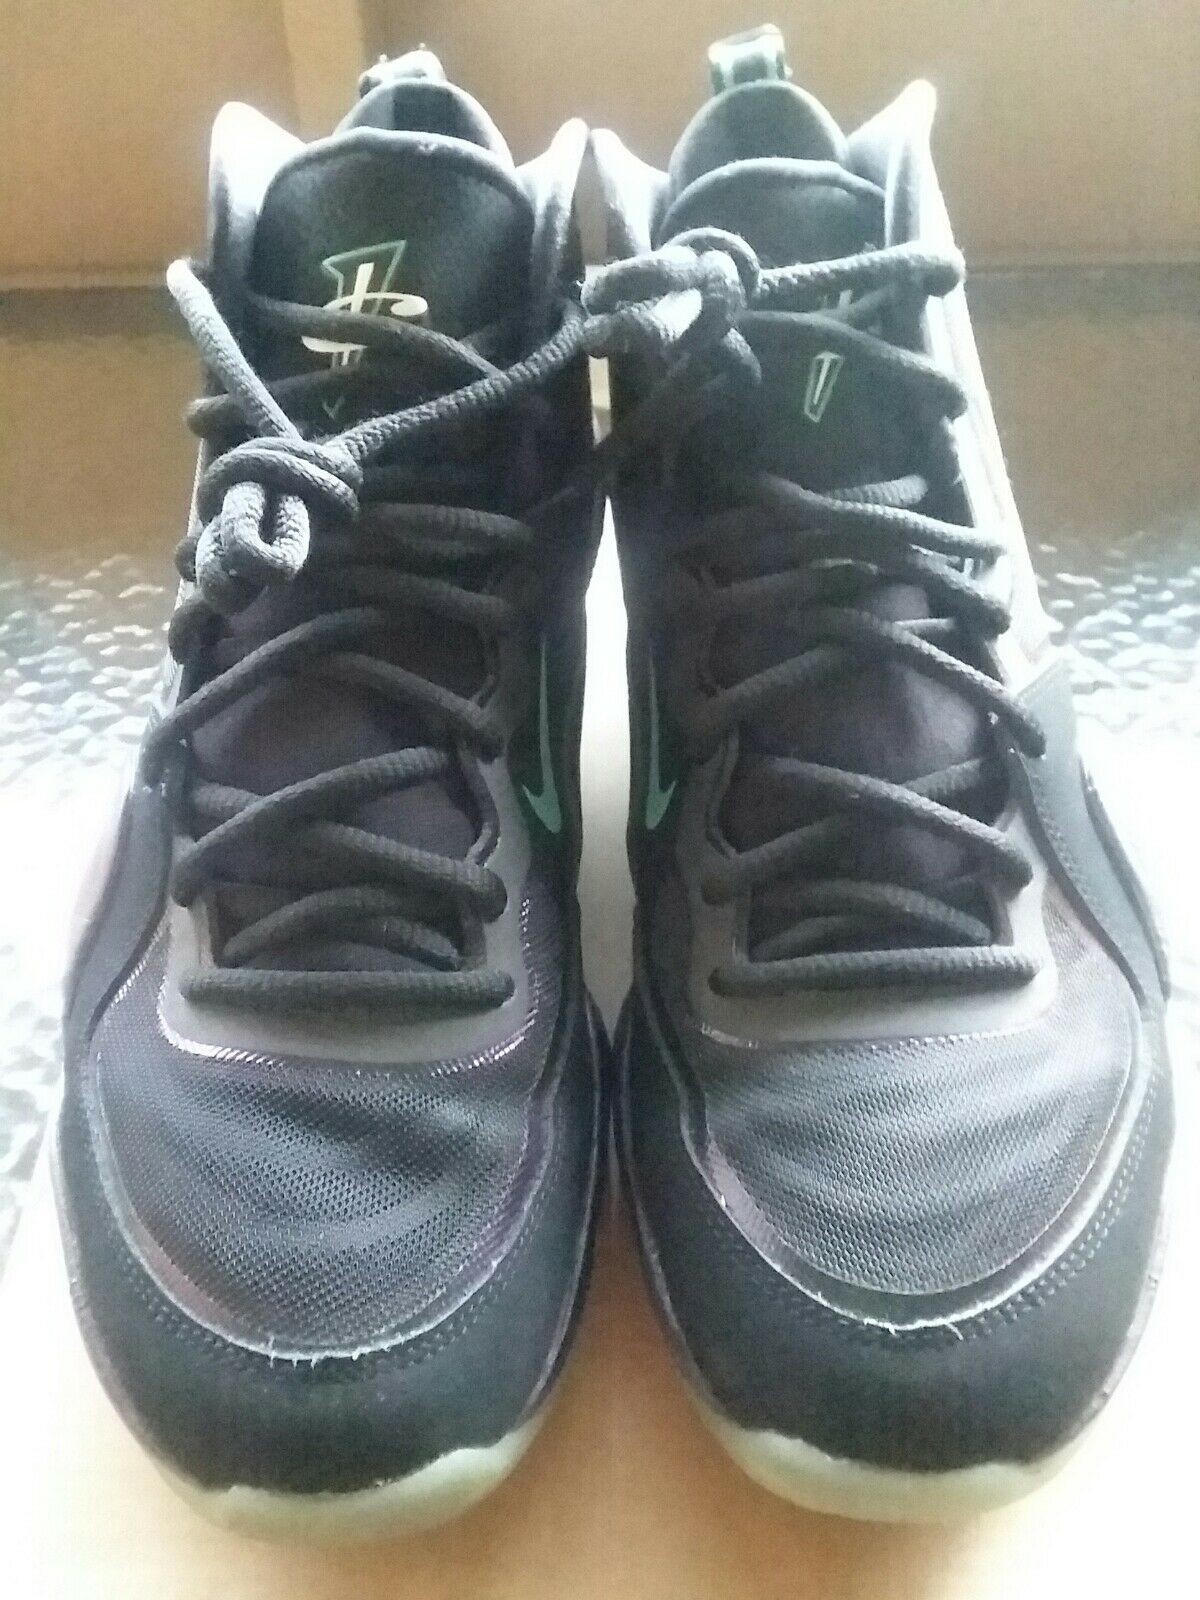 Nike air penny v 8,5 uomini pre posseduto!bello! posseduto!bello! pre 5fb145